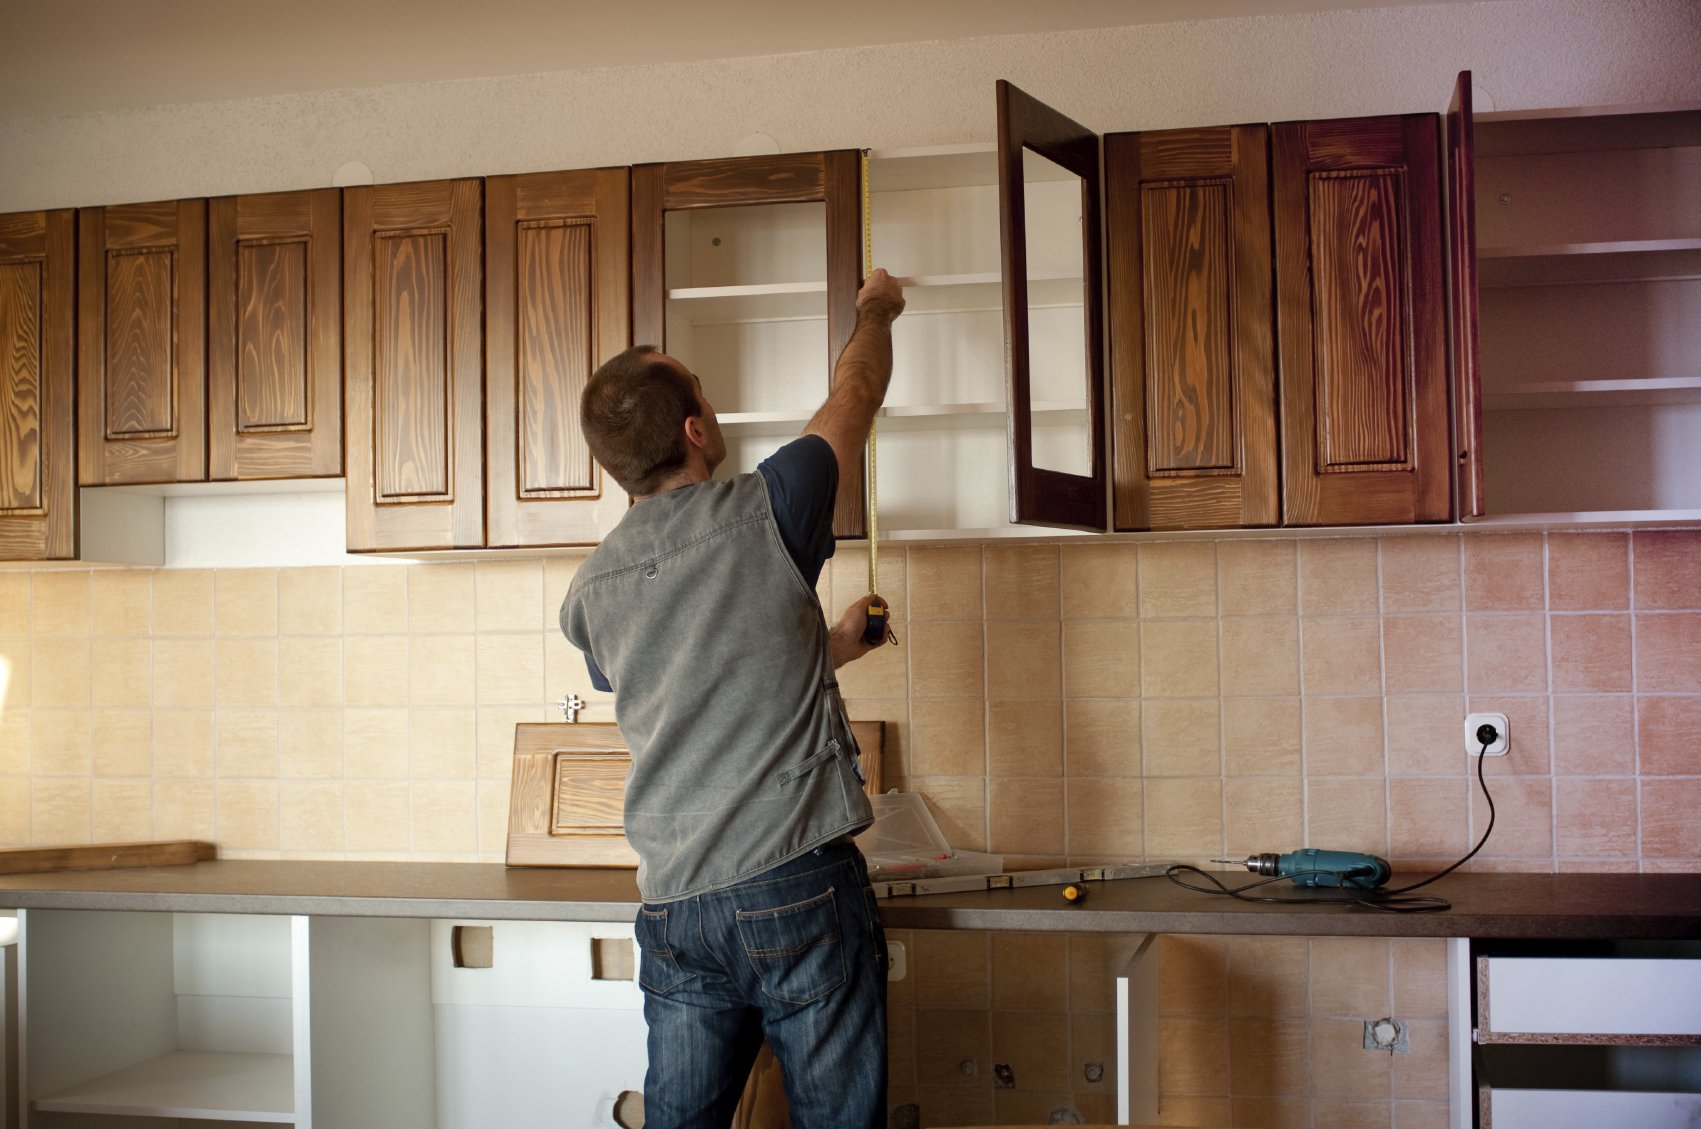 Kitchen Respray Cost How Much Does It Cost To Respray A Kitchen In Ireland